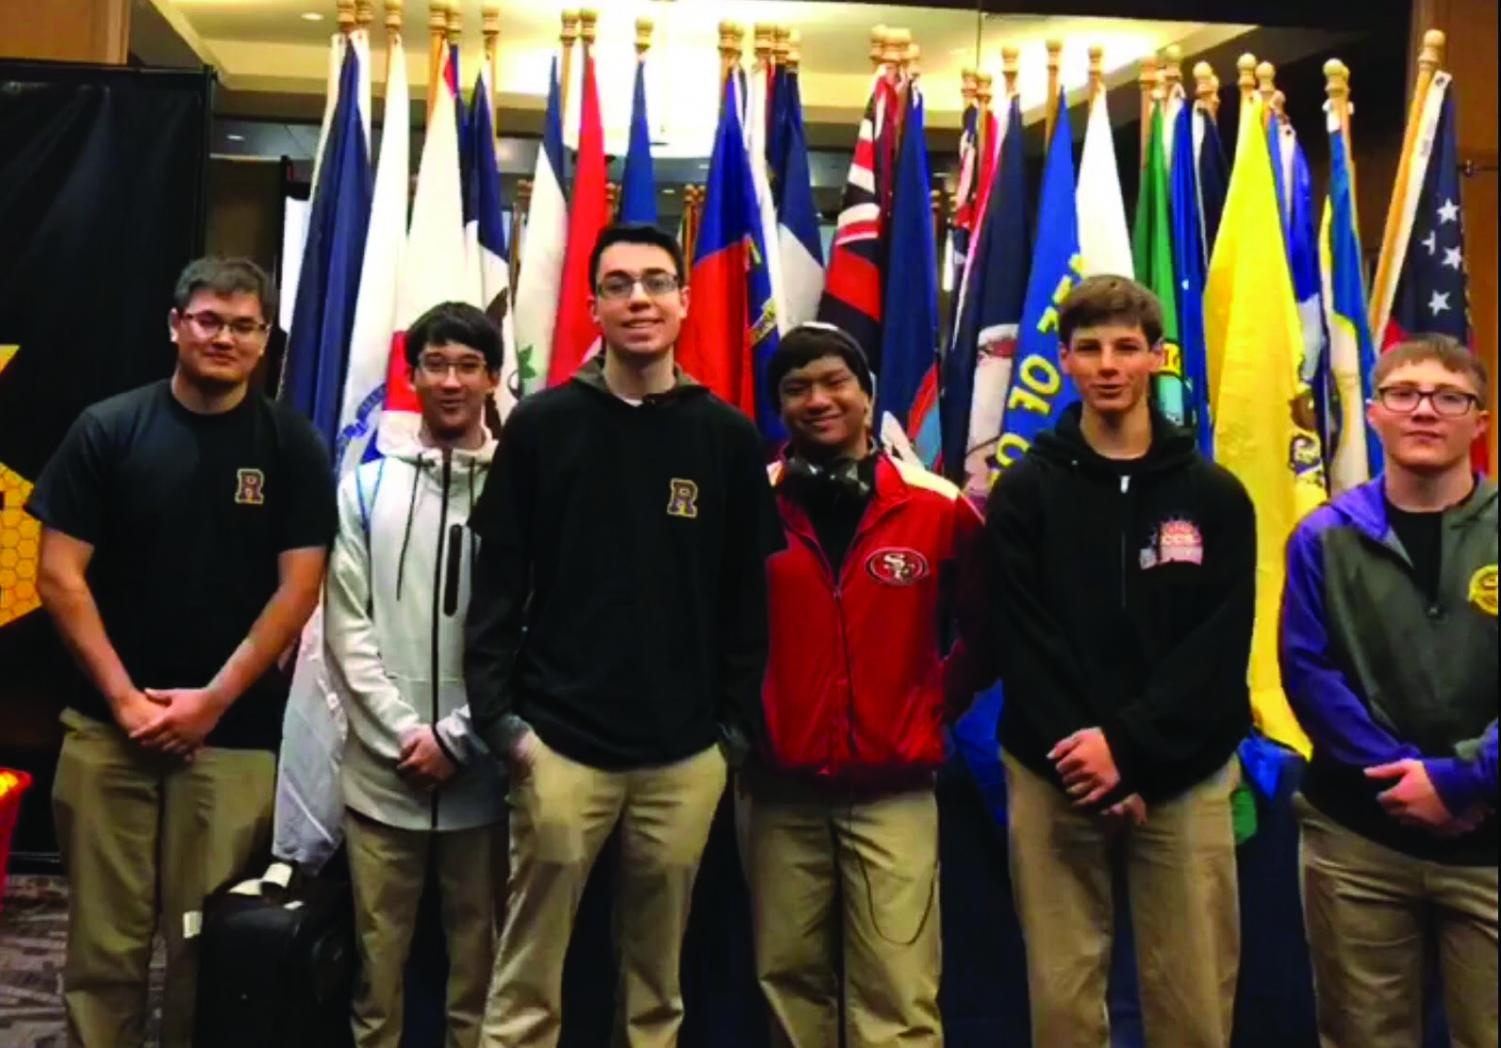 Matthew Driskill '18, John Regidor '18, Roman Peregrino '18, Jabriel Andrade '18, Michael Gray '20 and Dominic Borrego '20 competed for Archbishop Riordan High School at the National History Bowl Championships for the first time in school history.